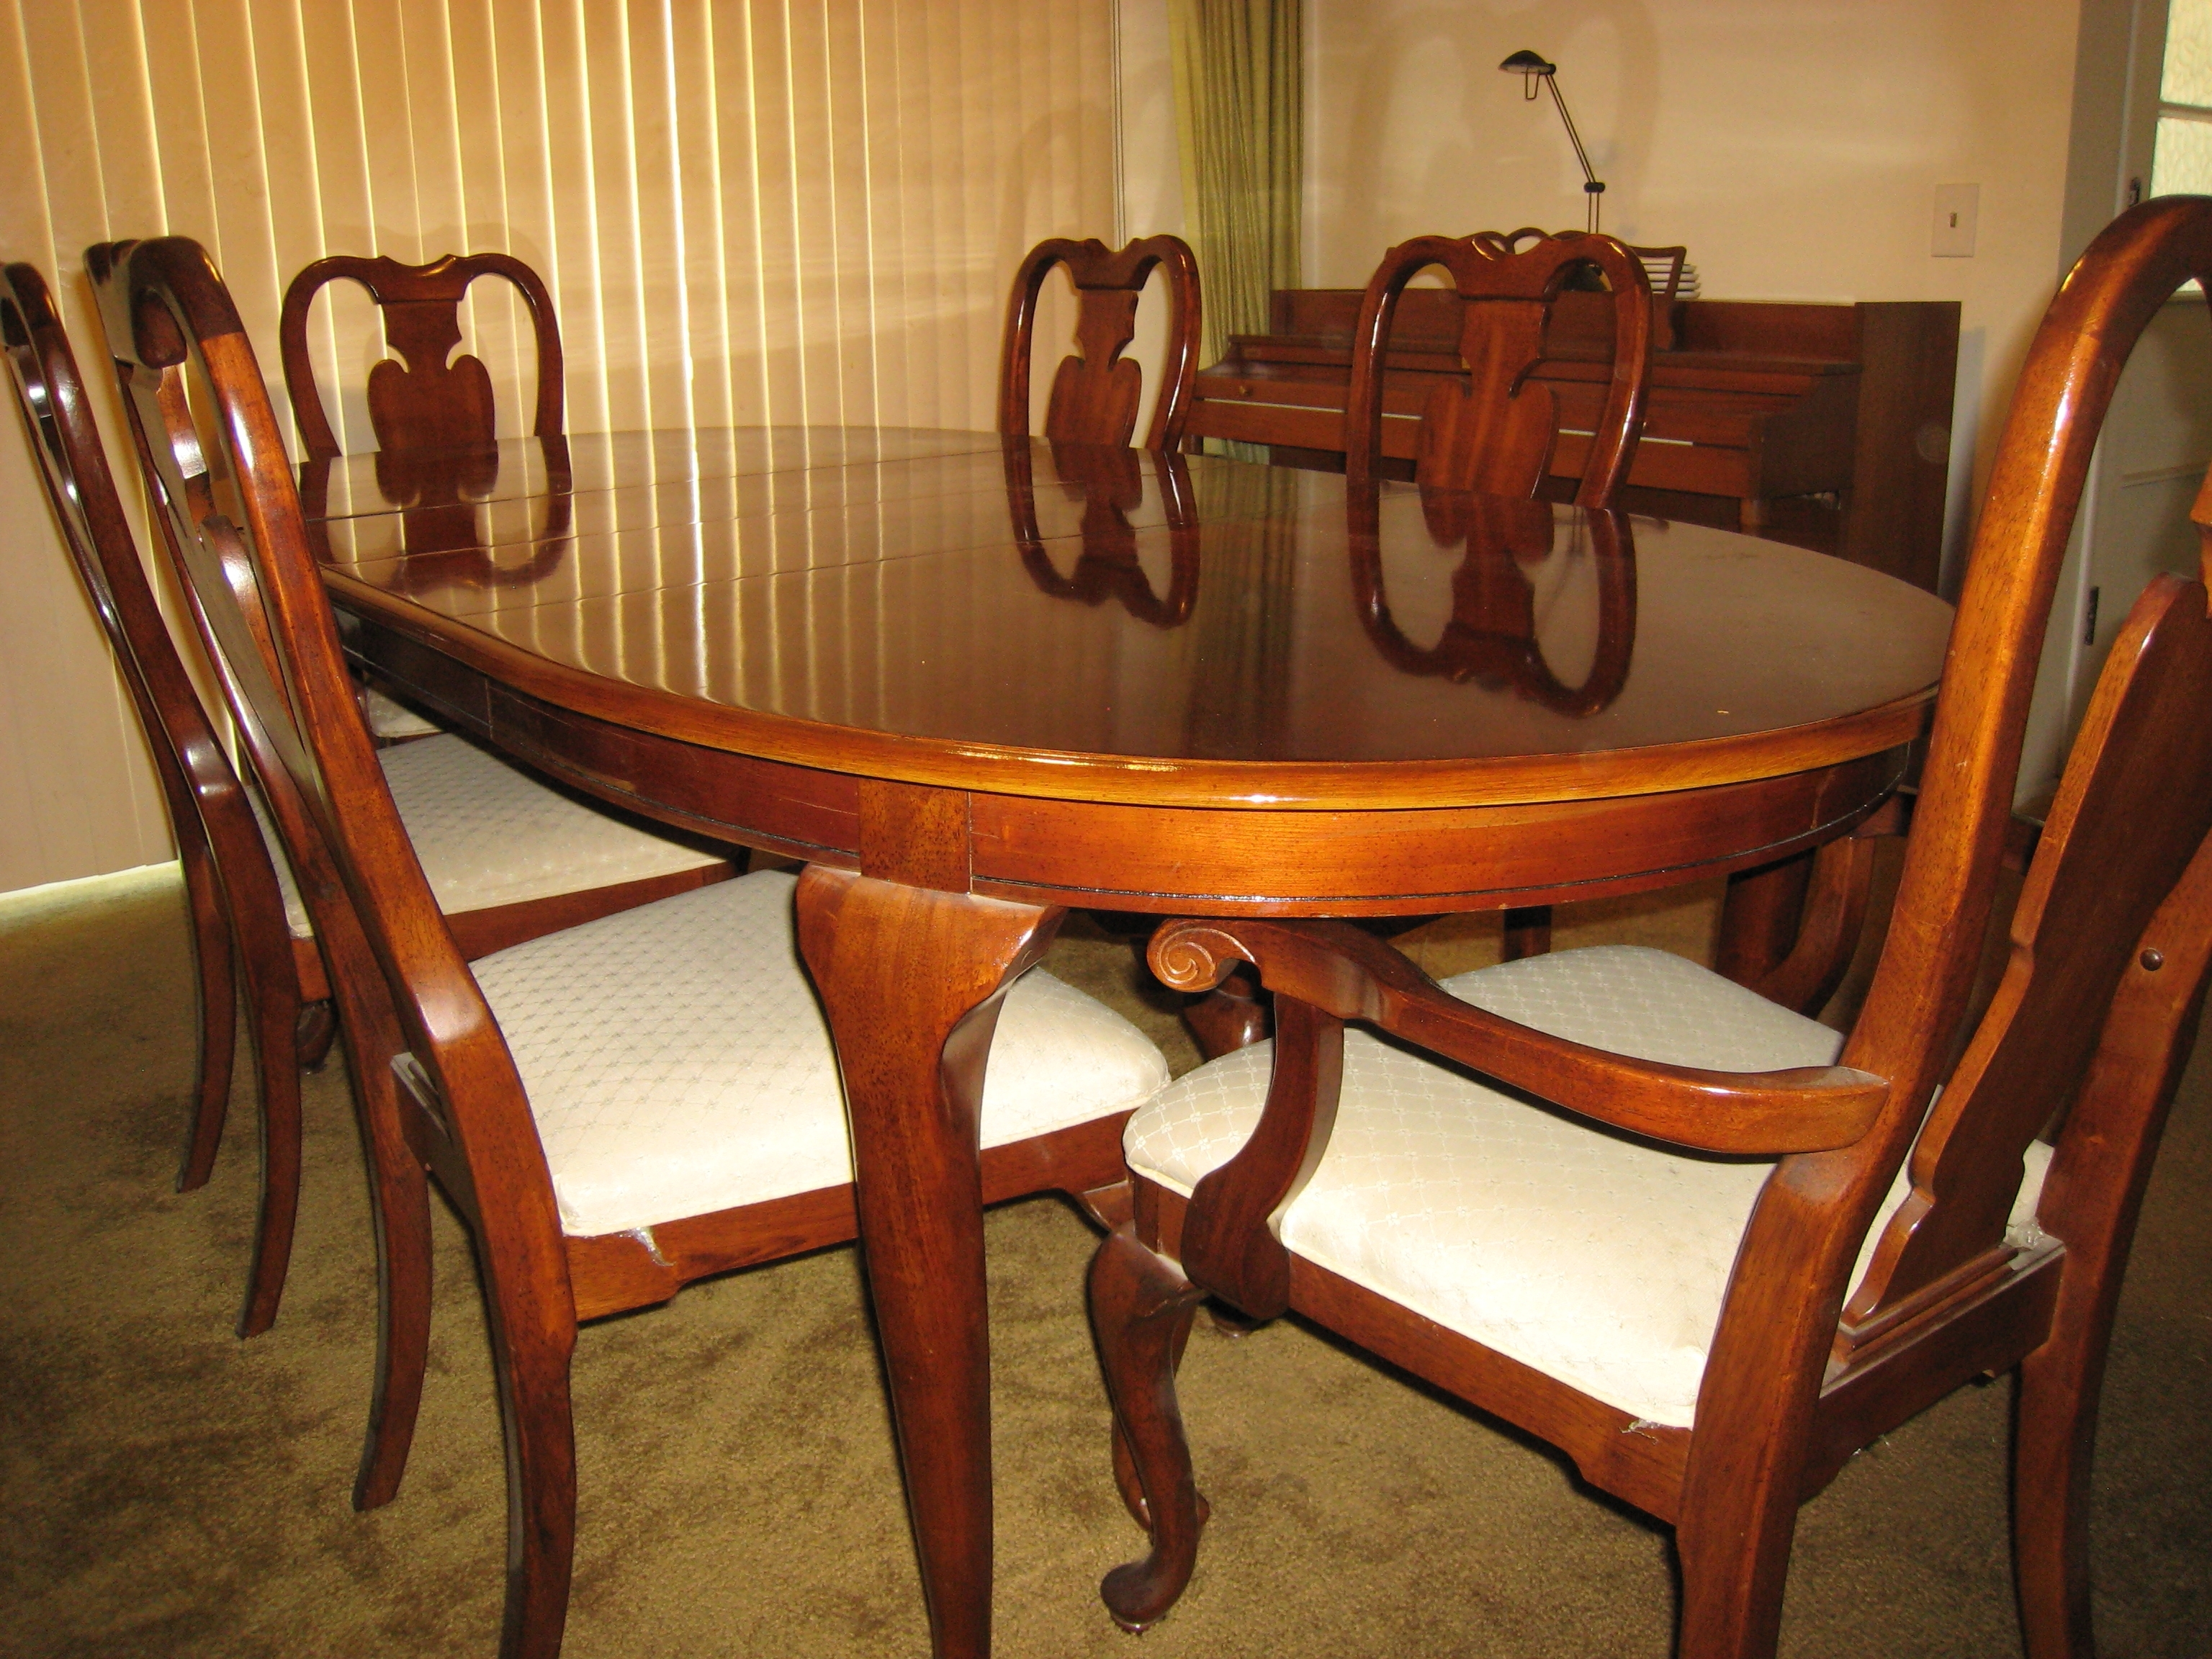 2017 Rich Mahogany Dining Table With Six Mahogany Chairs And Matching Throughout Mahogany Dining Tables And 4 Chairs (Gallery 3 of 25)